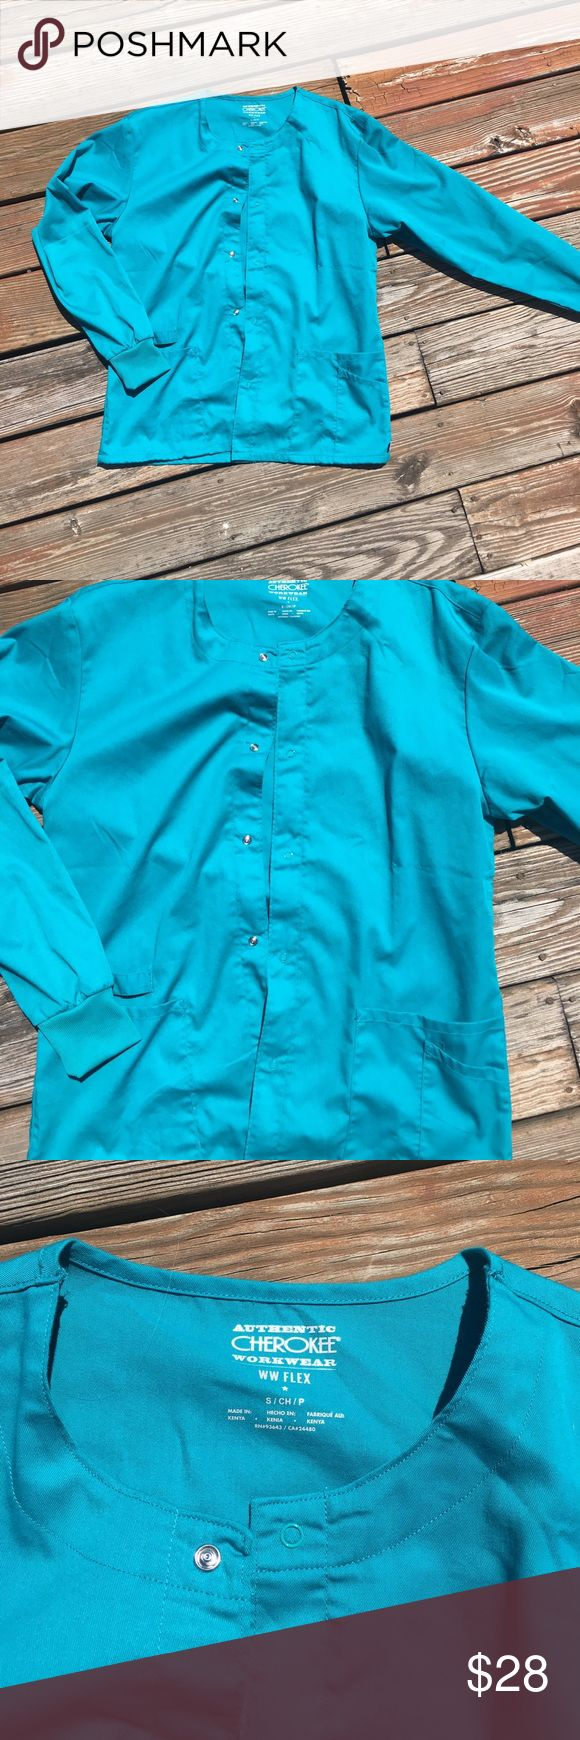 Cherokee WW Flex Teal Scrub Jacket Size Small Never worn, no tags. Size is small. The color is teal. The picture looks a lot lighter than the actual color. Cherokee Jackets & Coats Utility Jackets